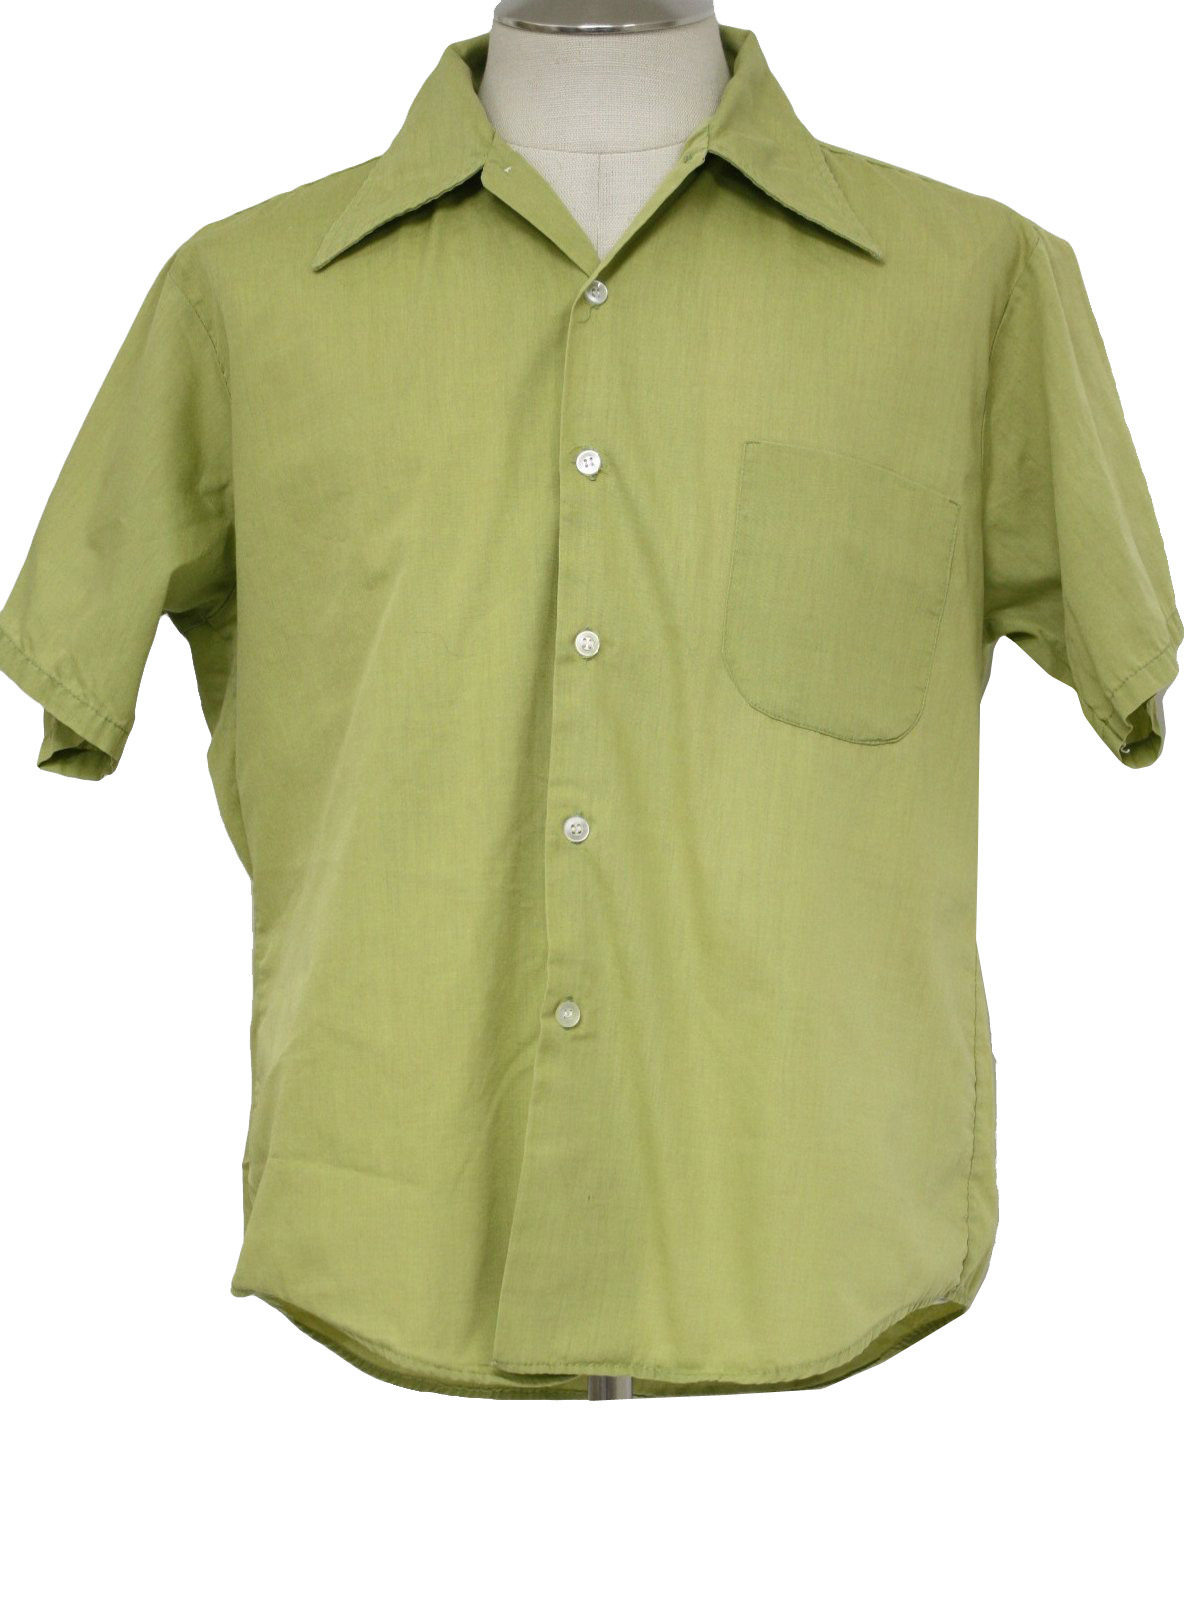 70s Retro Shirt 70s Made In Jamaica Mens Lime Green Cotton